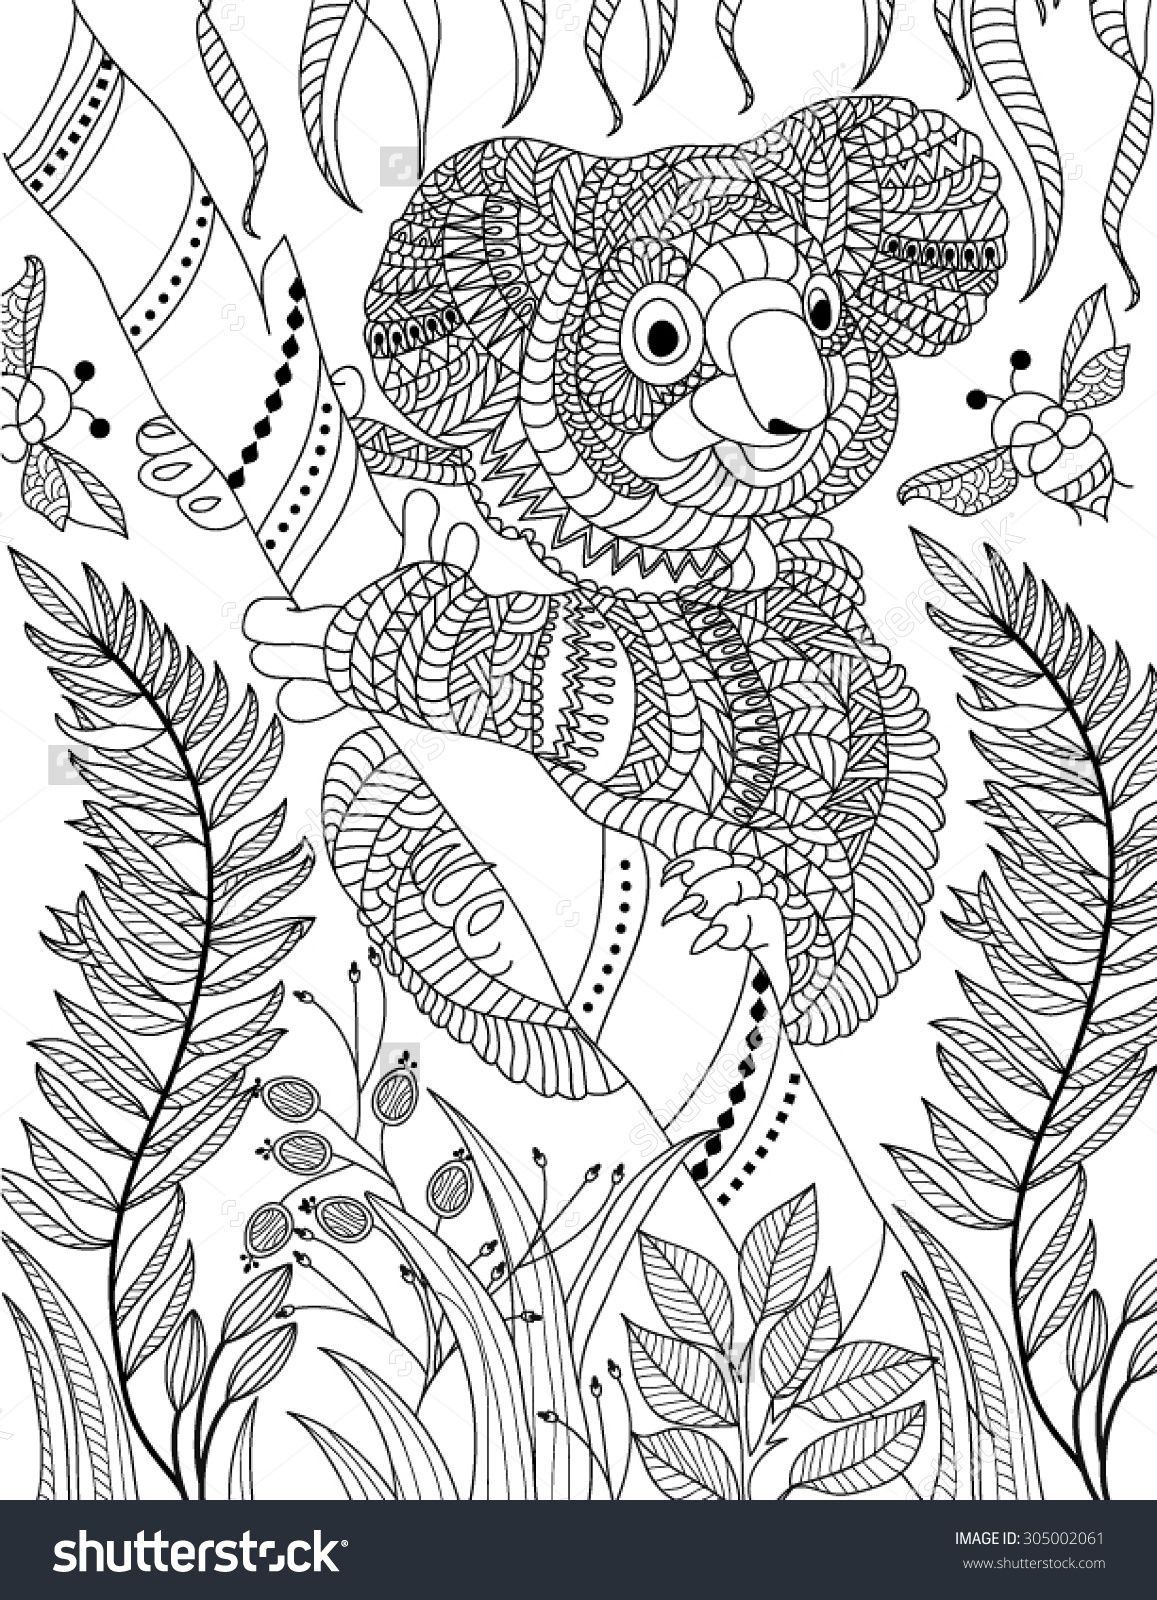 1960 s background coloring pages google search coloring books